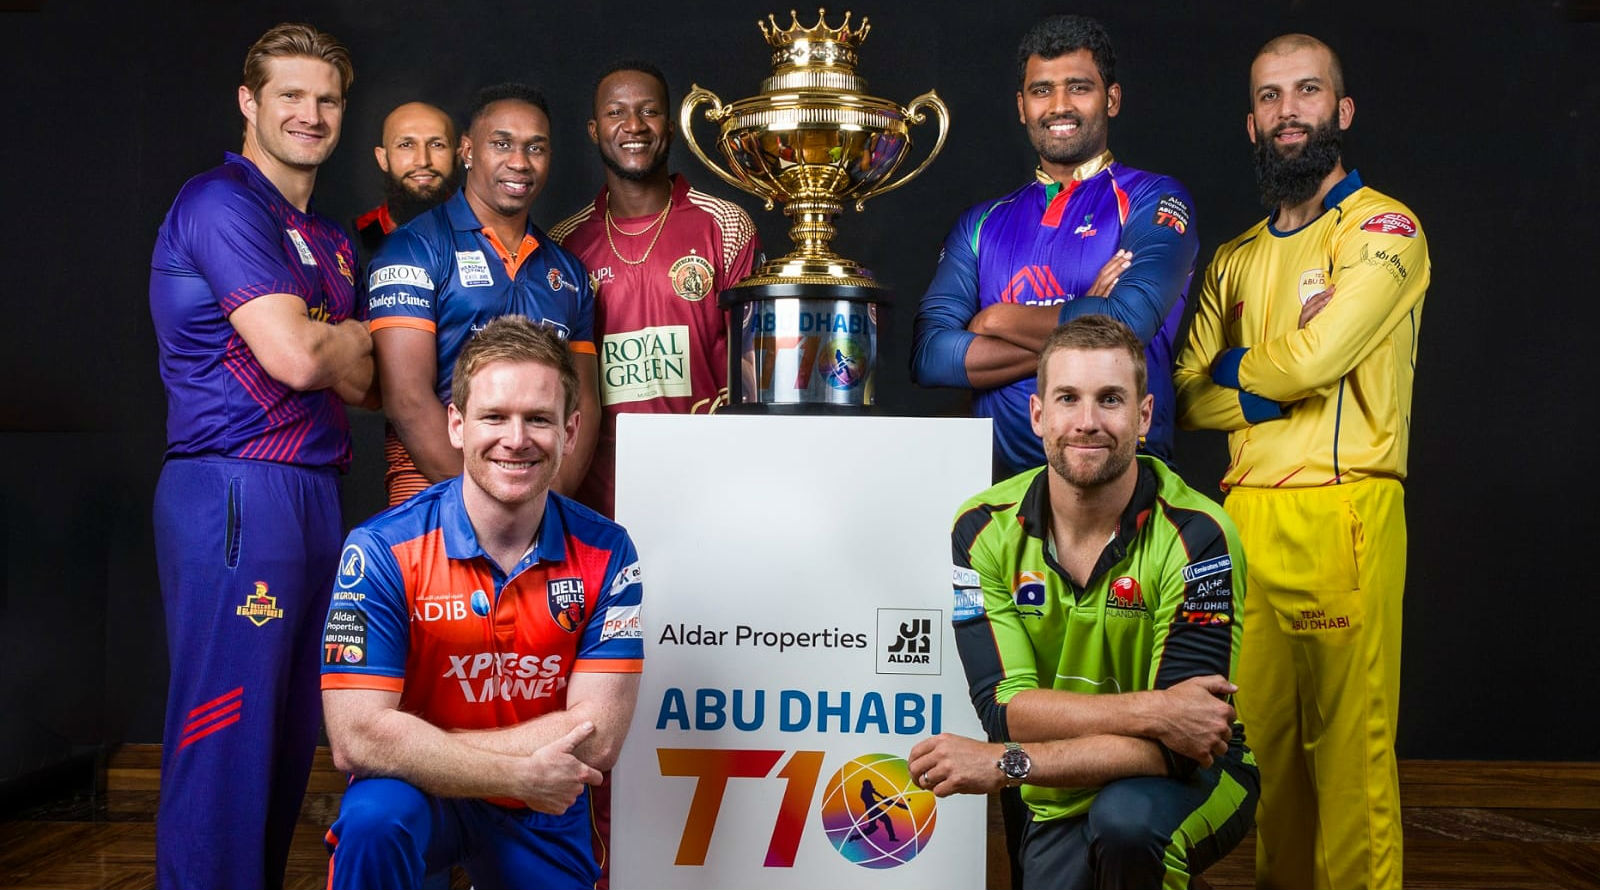 Abu Dhabi T10 League 2019 Kicks Off with Glittering Opening Ceremony at Zayed Cricket Stadium